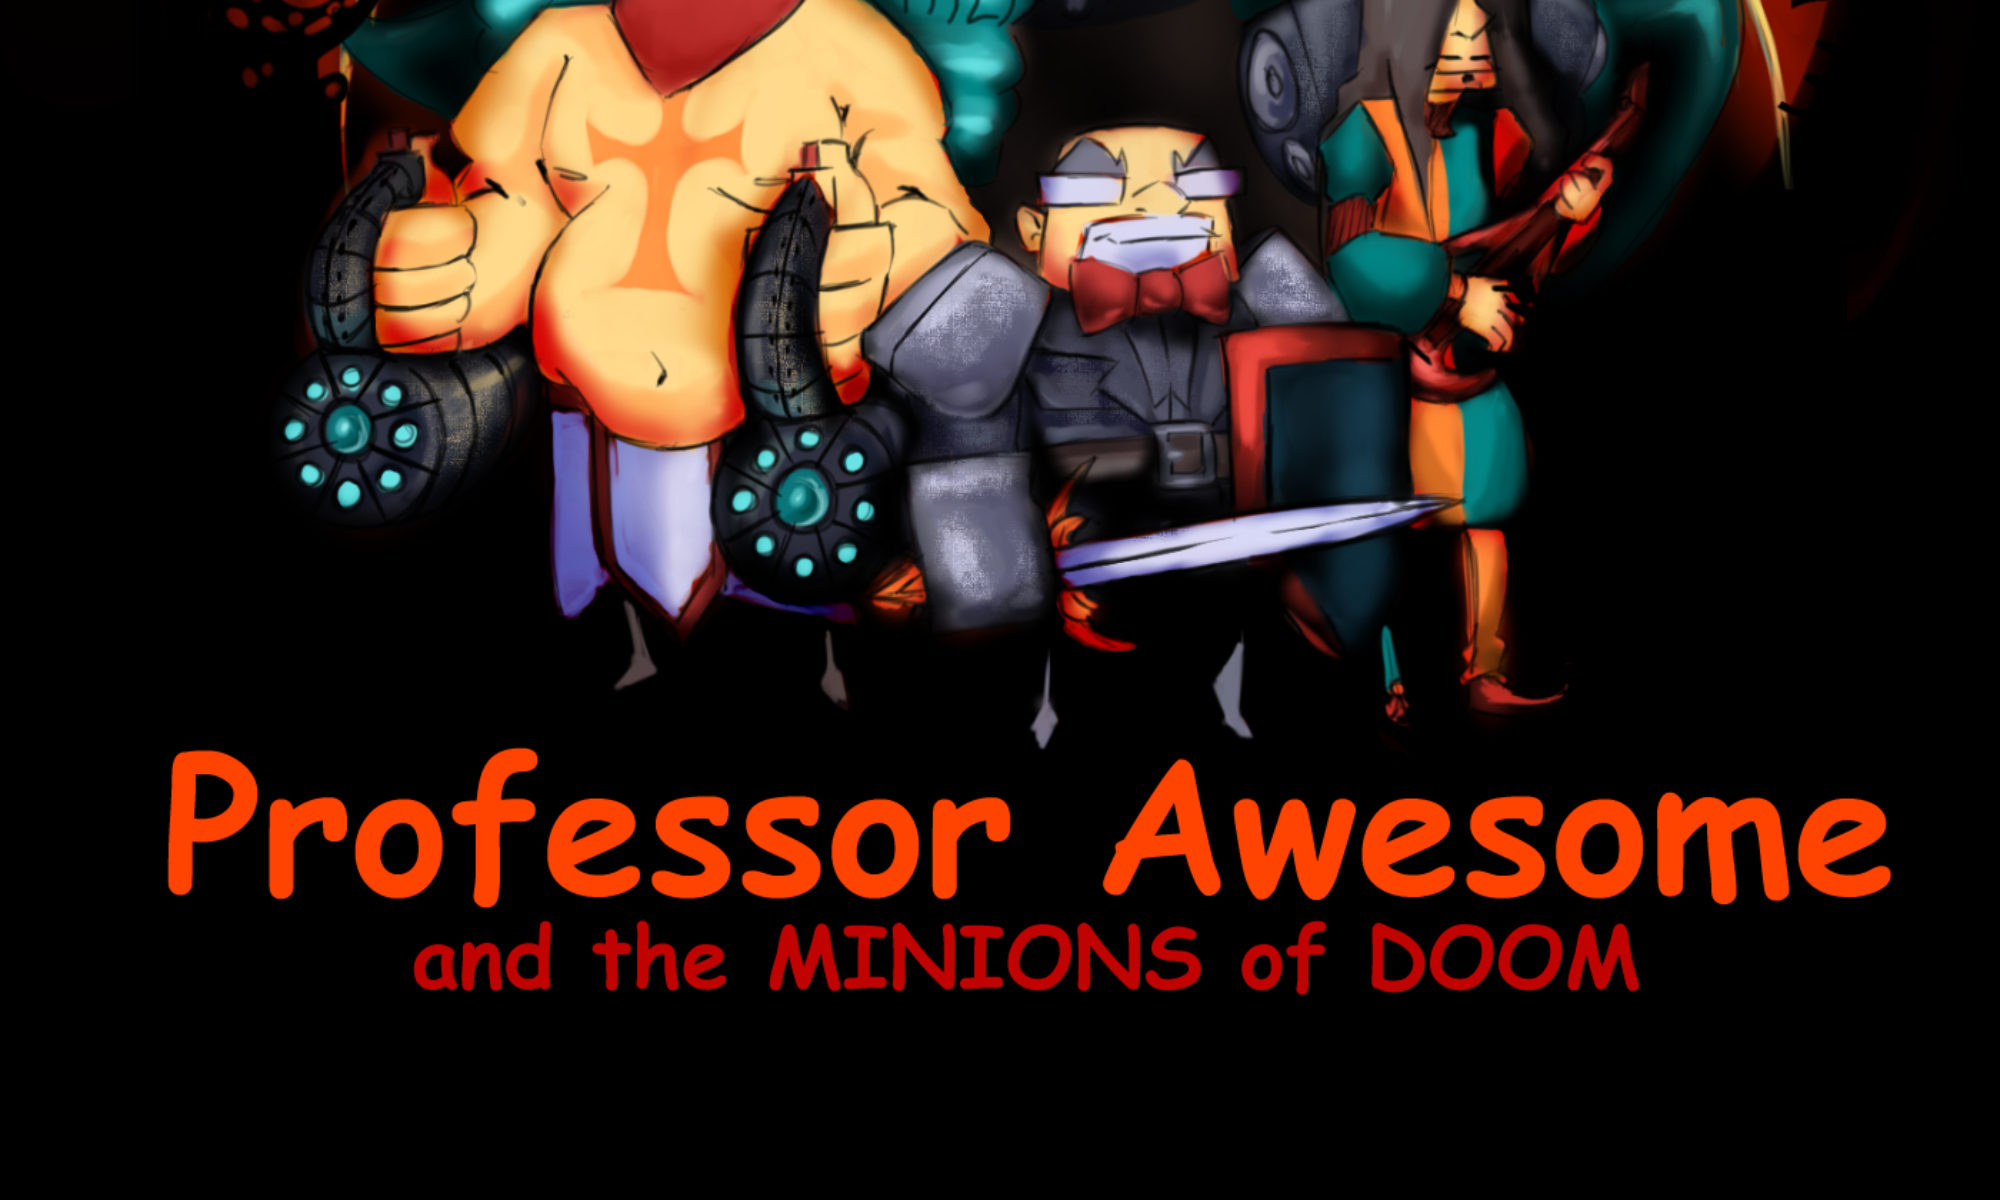 Professor Awesome and the Minions of Doom